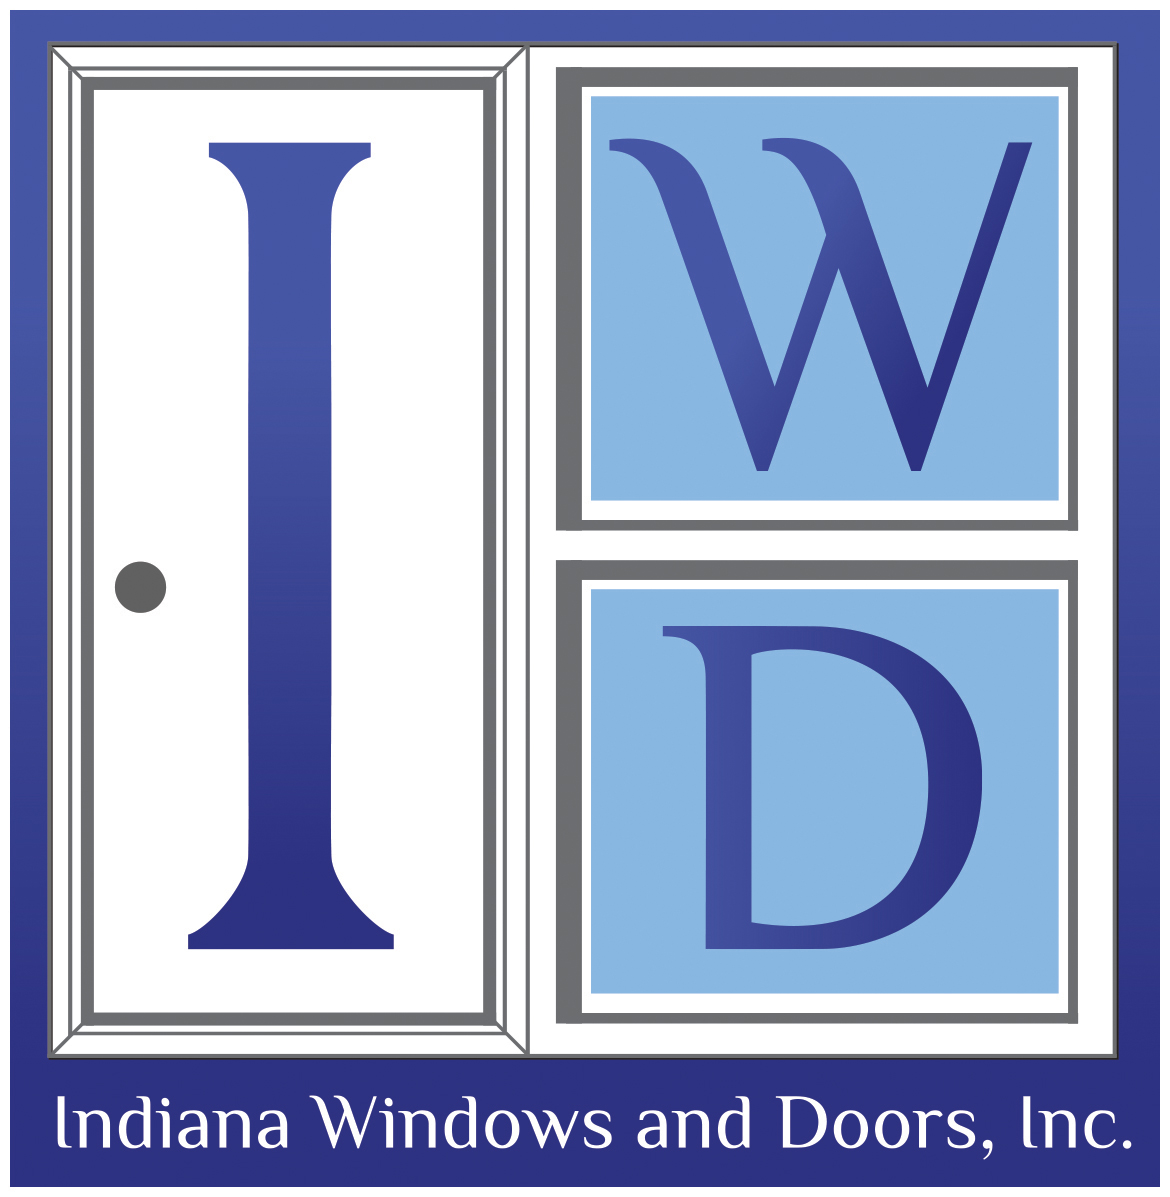 Indiana Wholesalers, Inc.